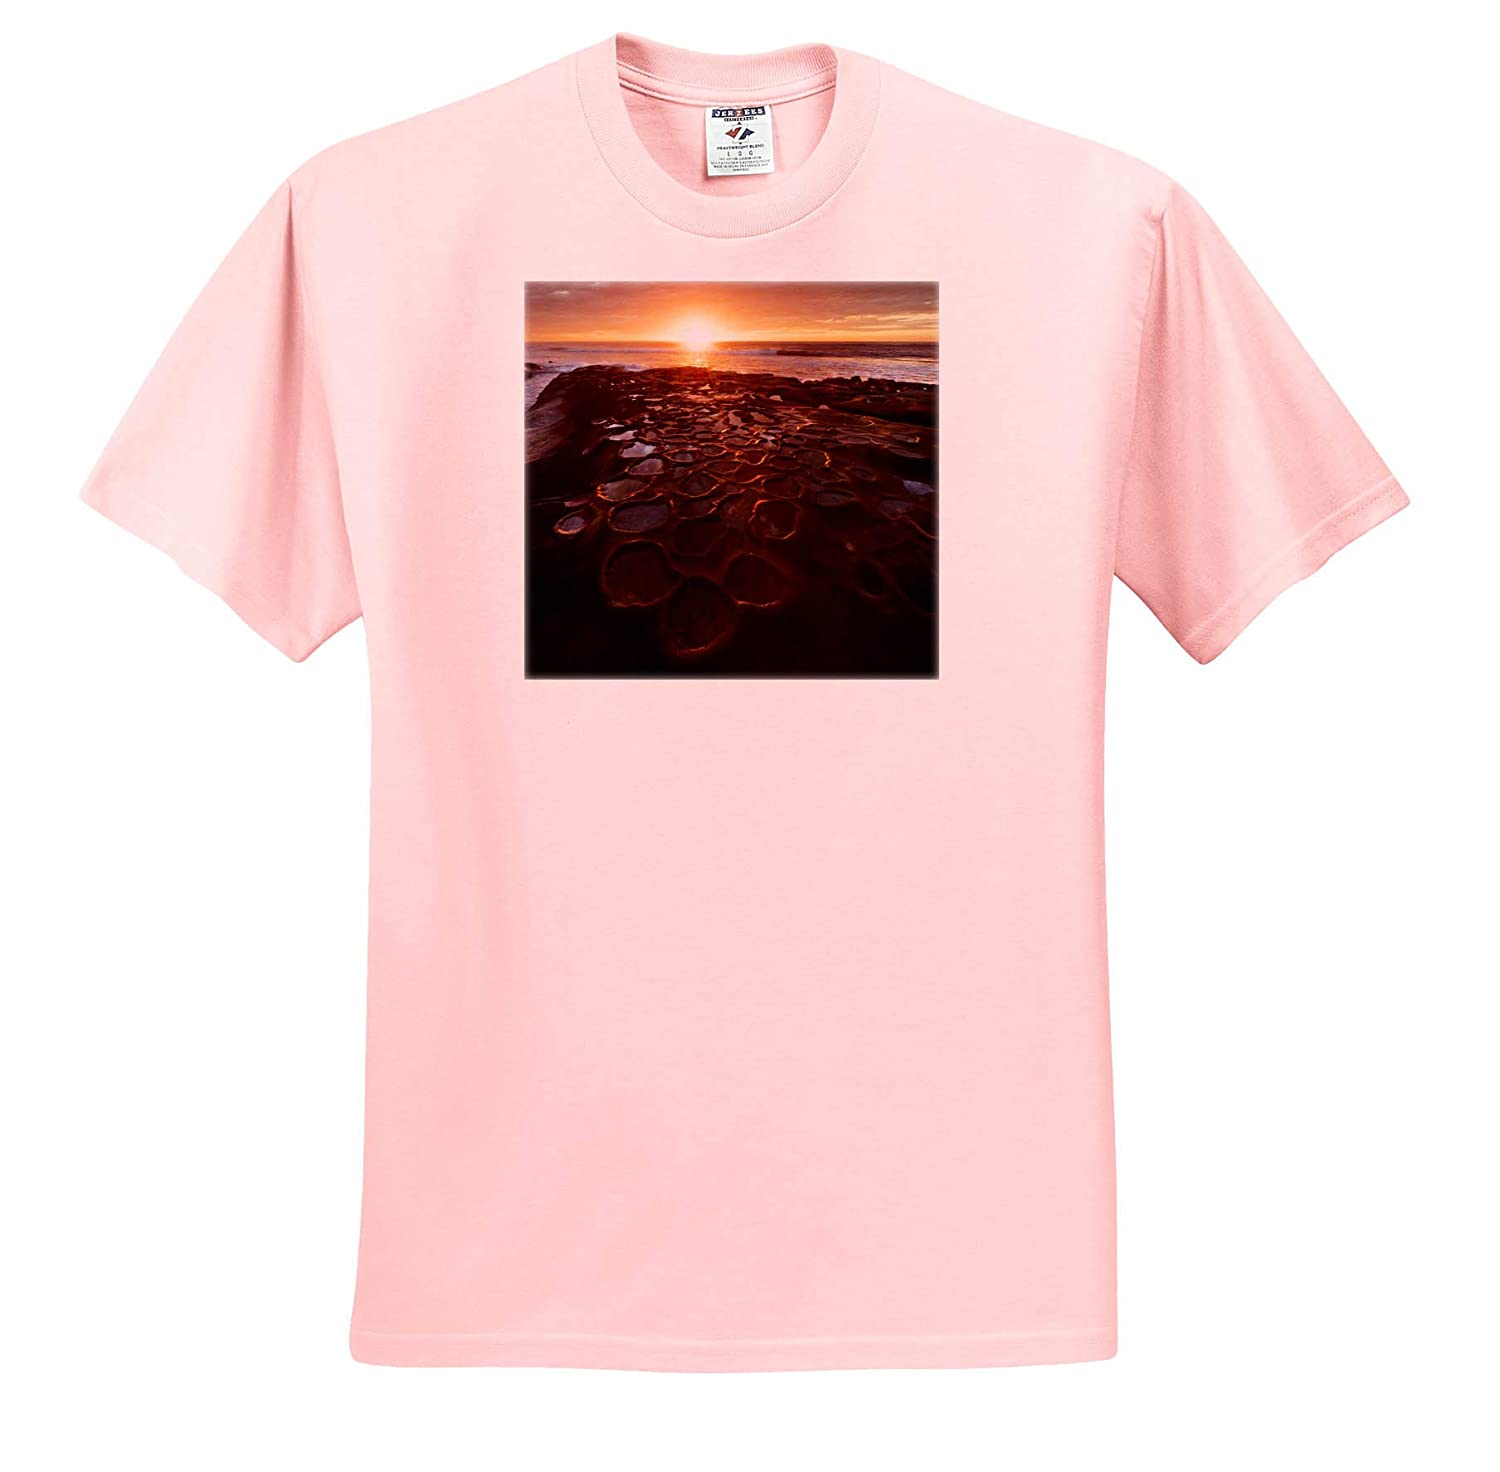 - Adult T-Shirt XL ts/_314639 Sunset Over Tide Pools California 3dRose Danita Delimont La Jolla USA Seascapes